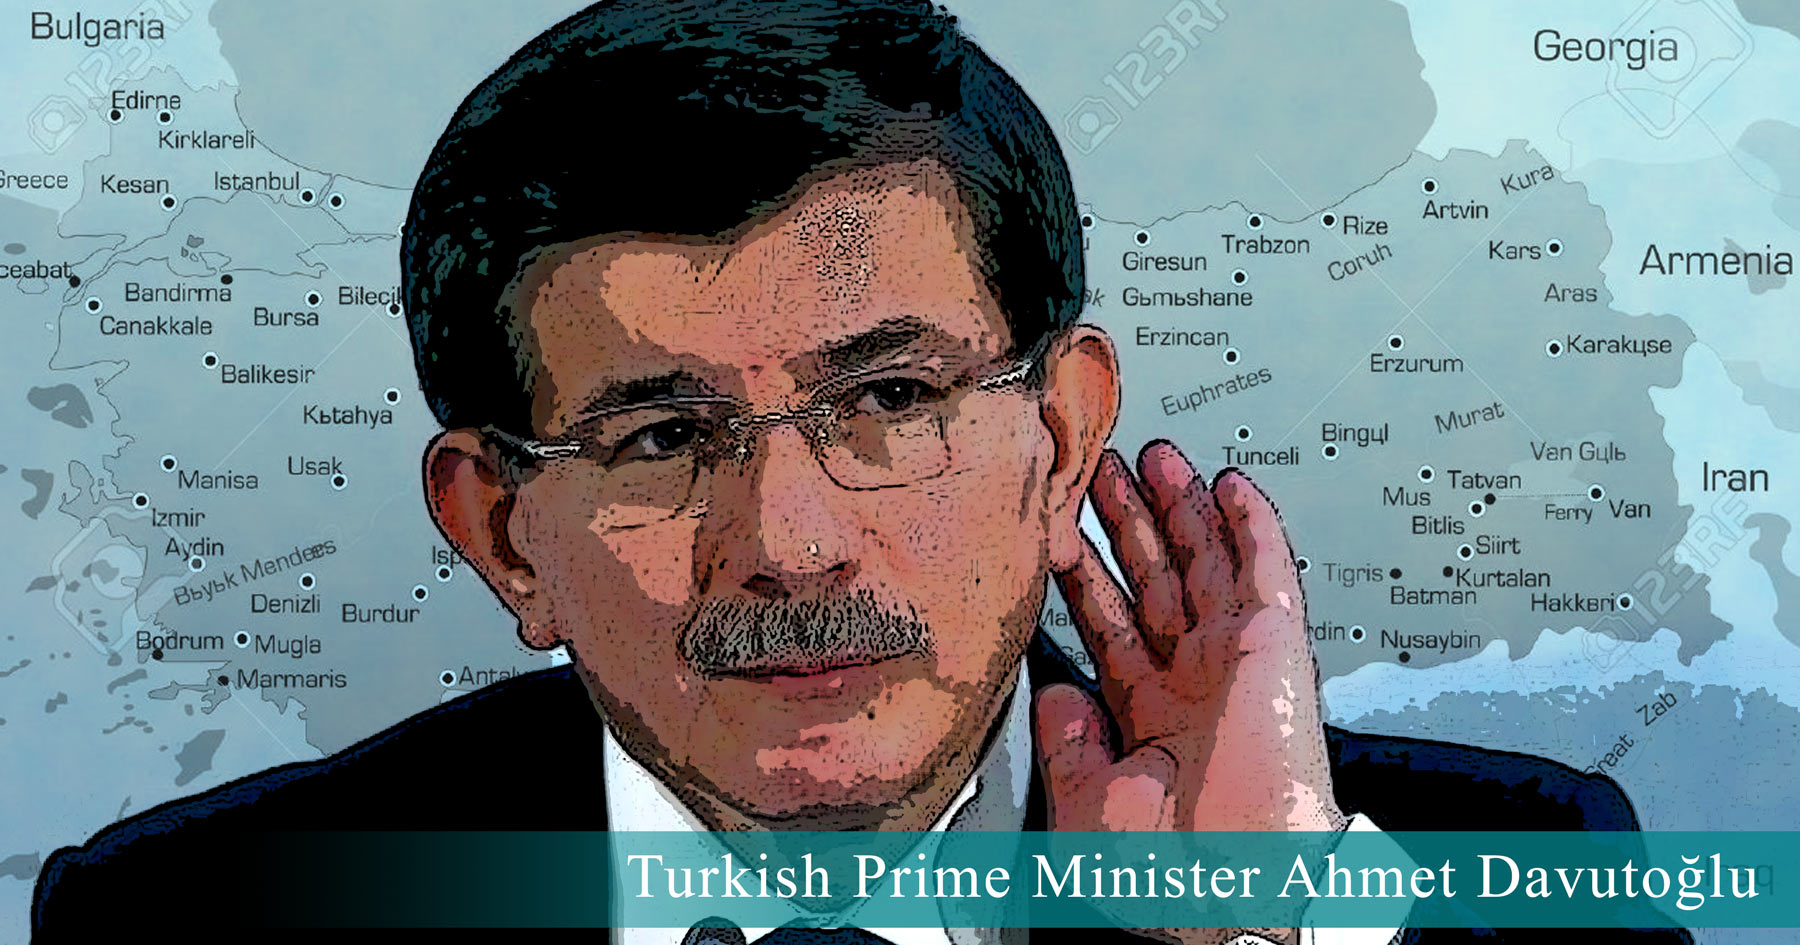 turkey, Ahmet Davutoğlu, free stuff, Bernie Sanders, illustration, Paul Jacob, Common Sense